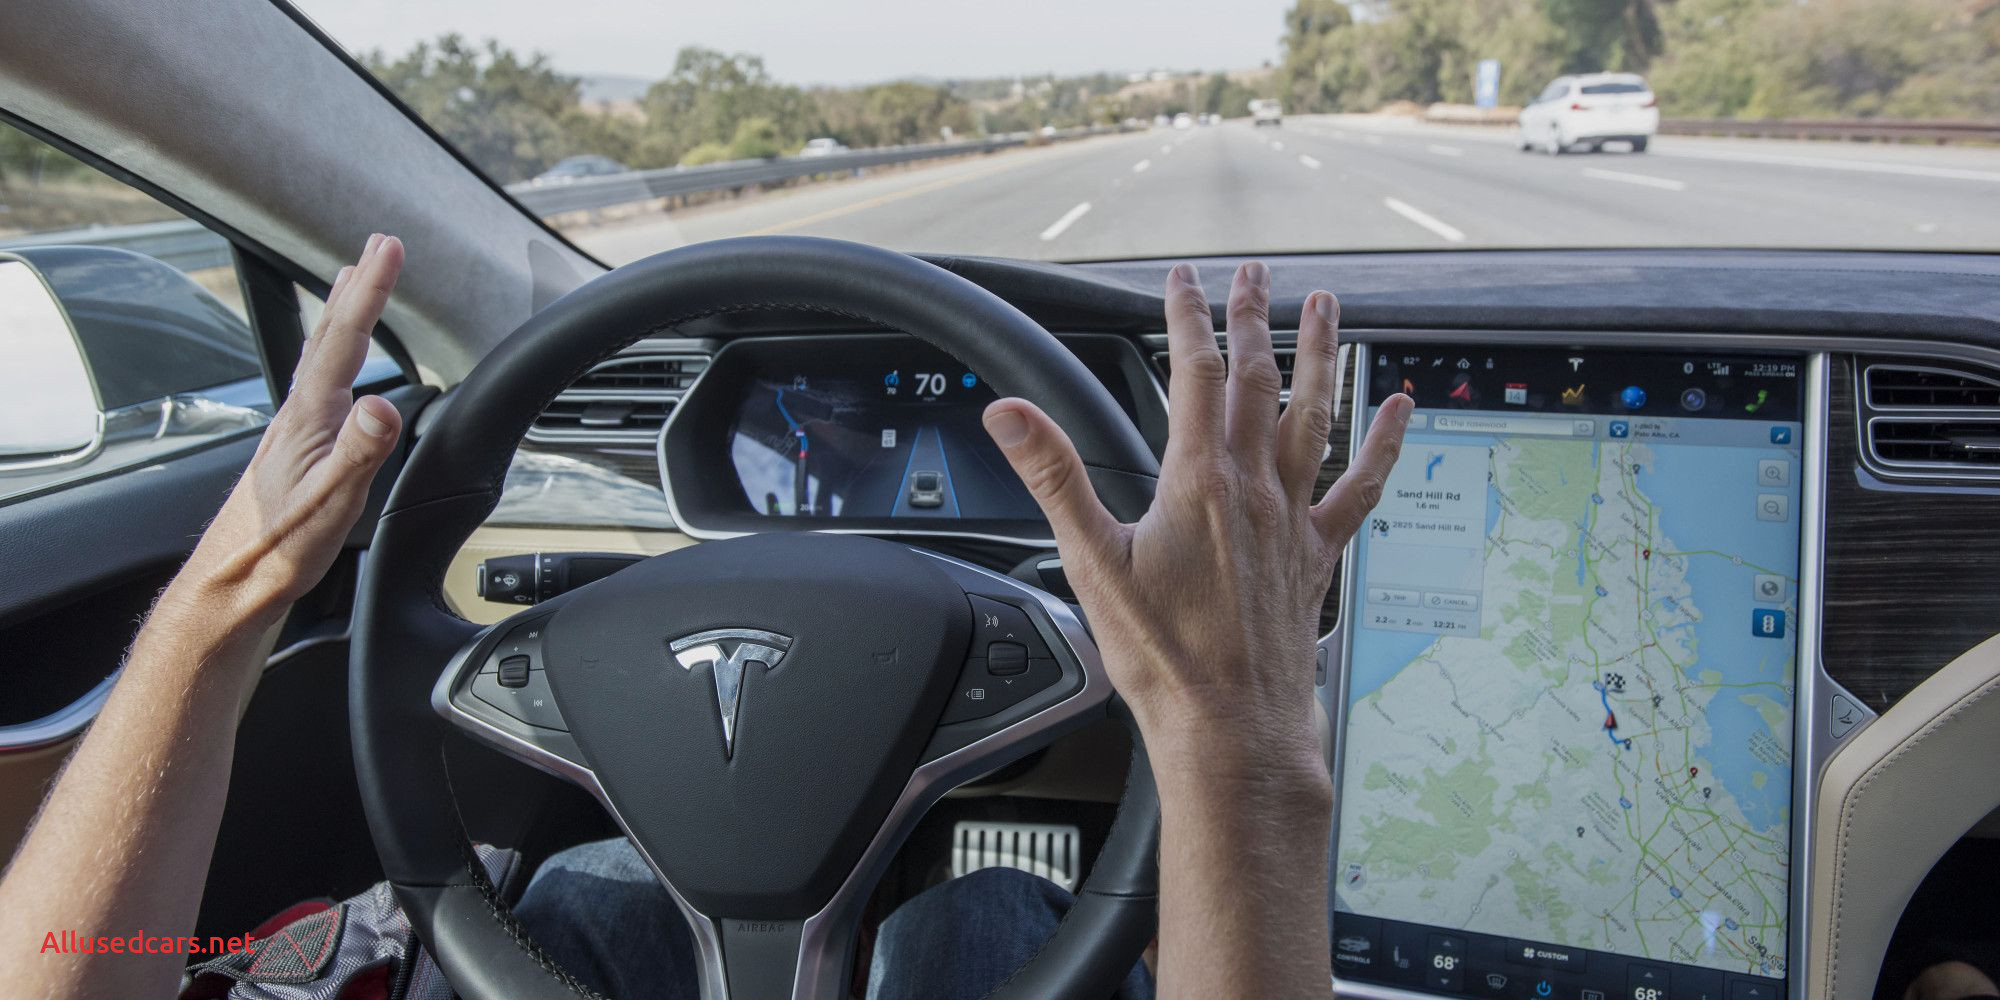 Tesla Made by Awesome Us Government to Rule On Autonomous Cars as soon as Next